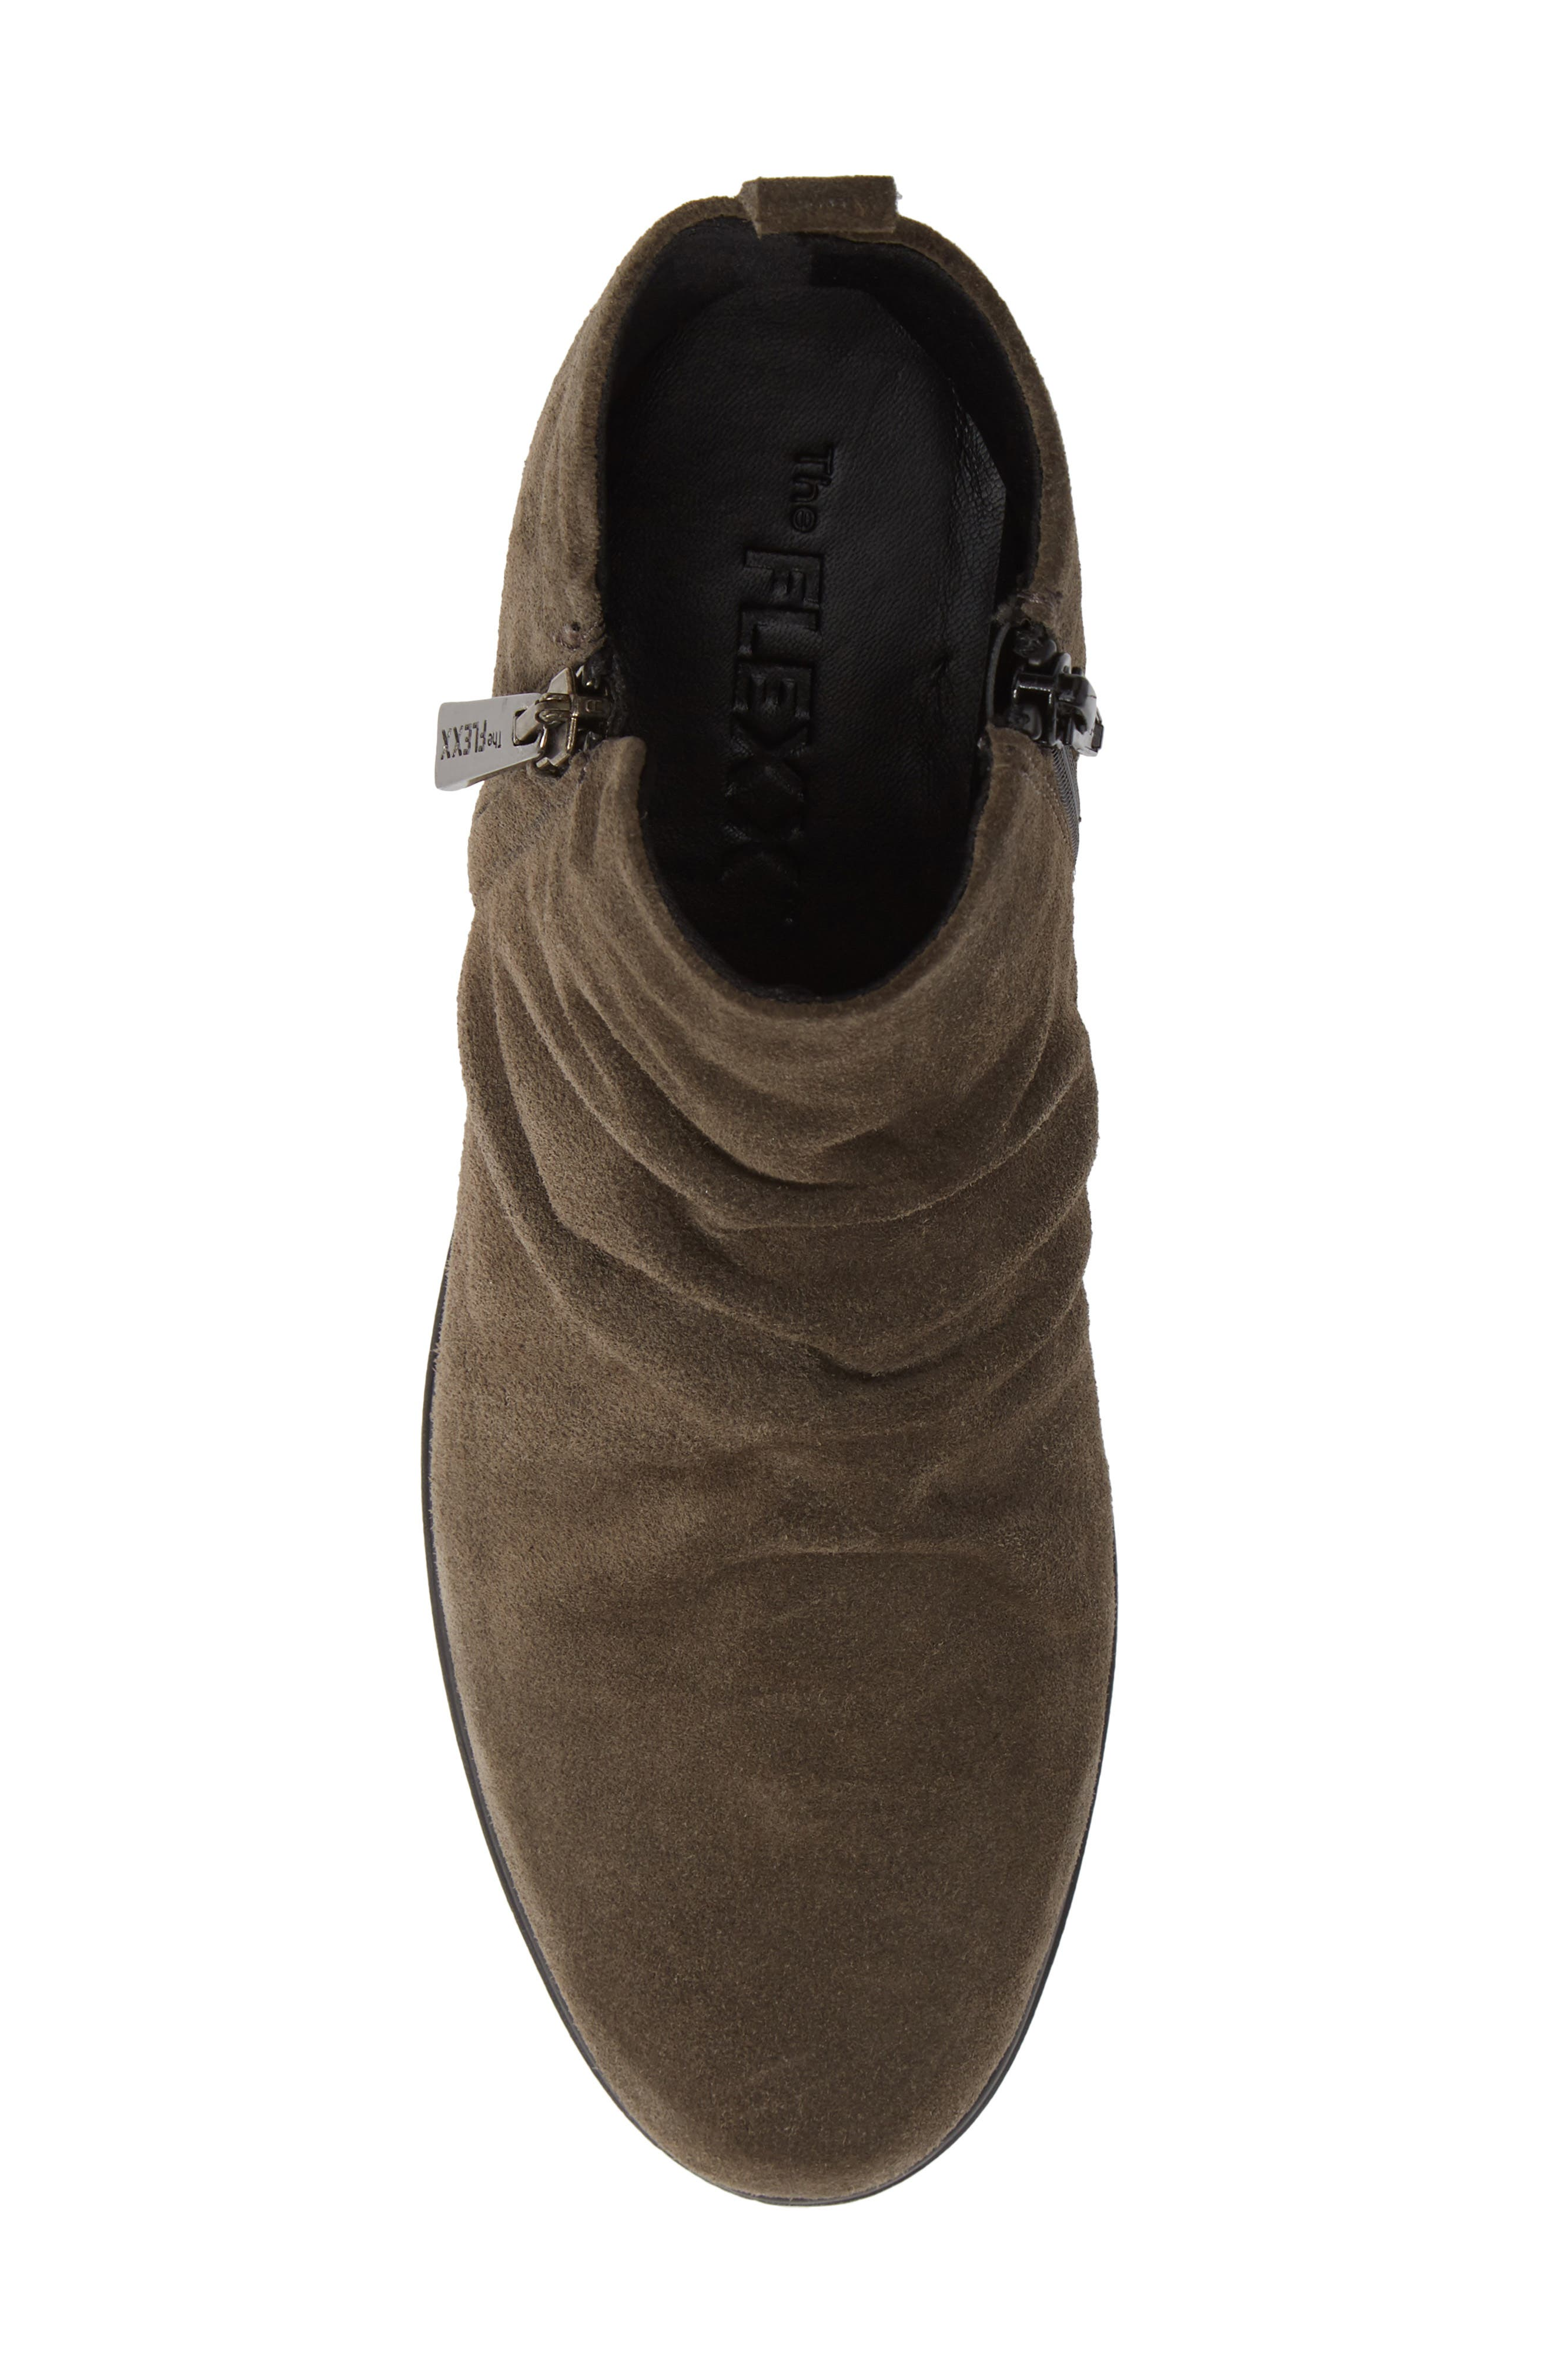 THE FLEXX, Slingshot Ankle Bootie, Alternate thumbnail 5, color, BROWN SUEDE